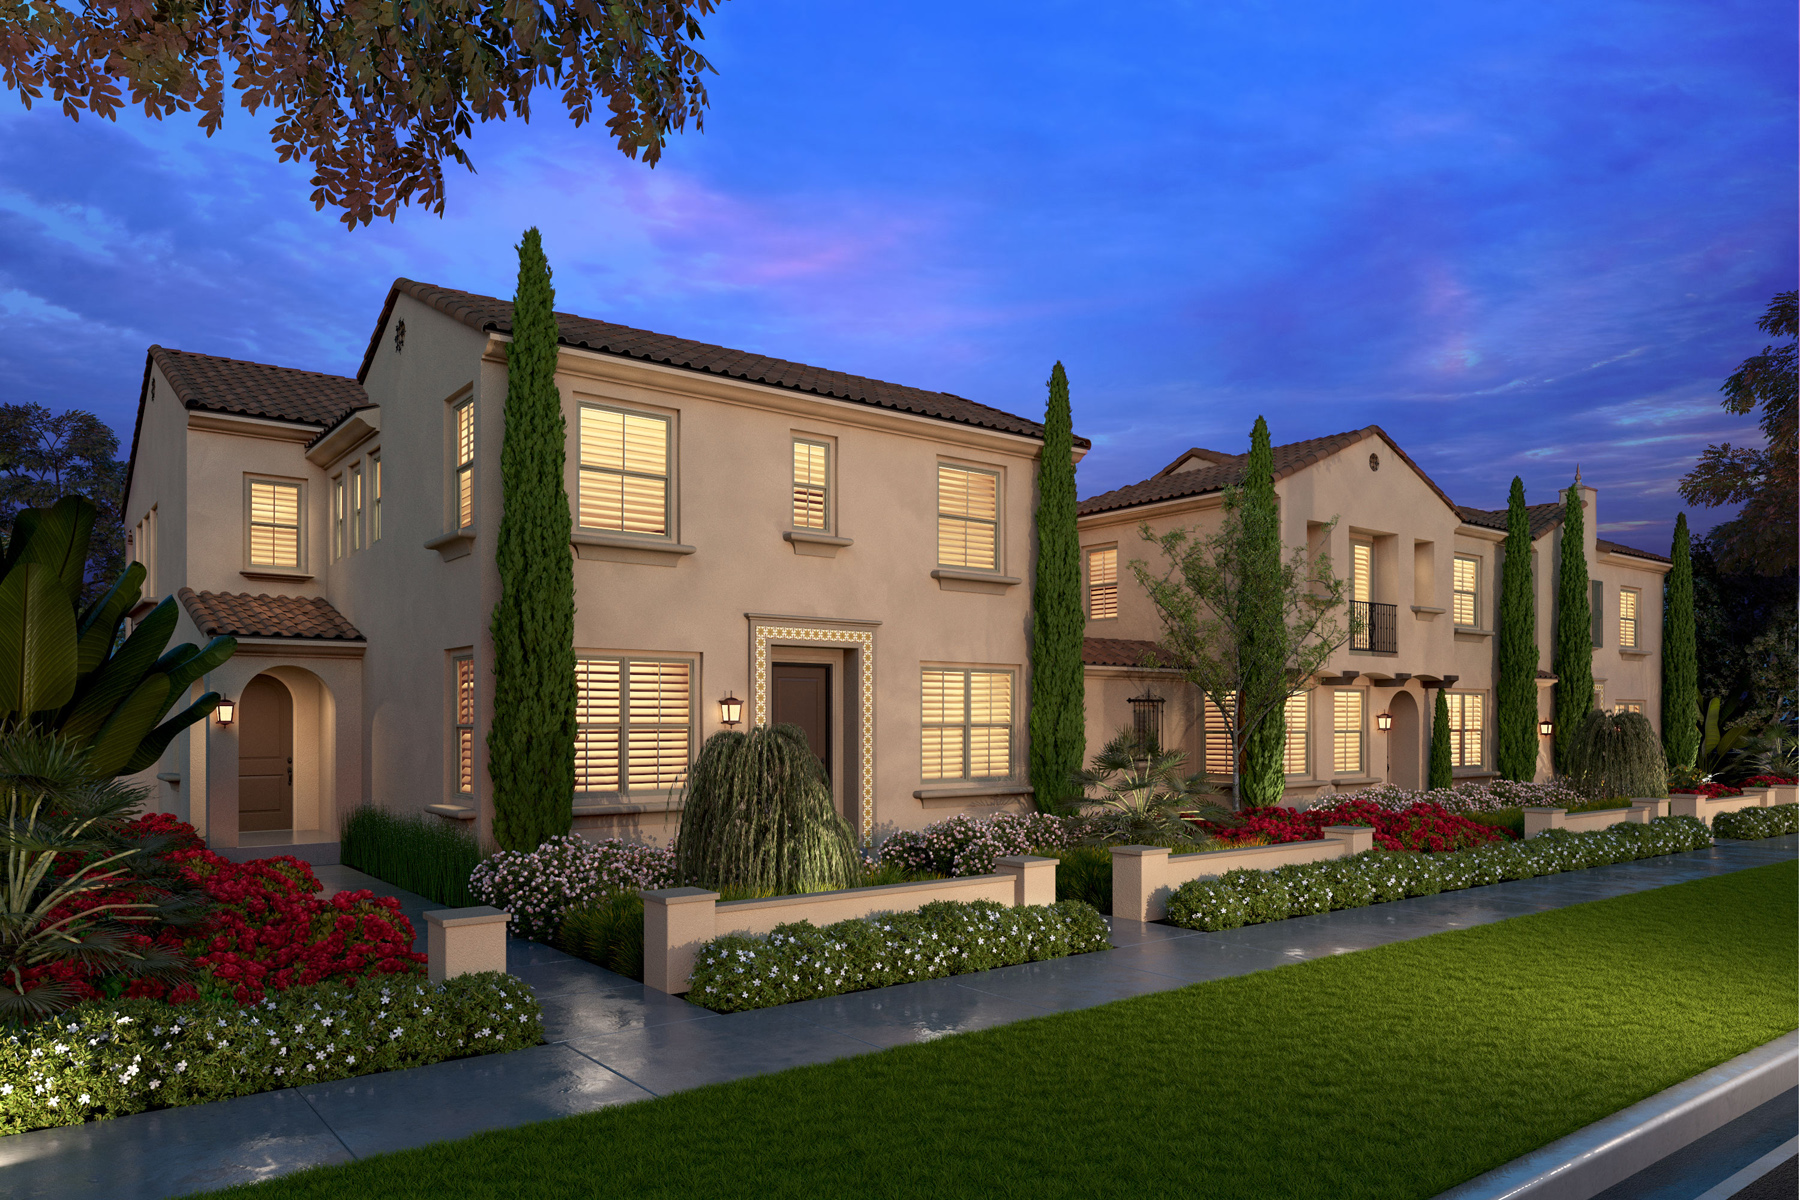 caserta, townhomes, flats, irvine new homes, irvine real estate, new irvine homes